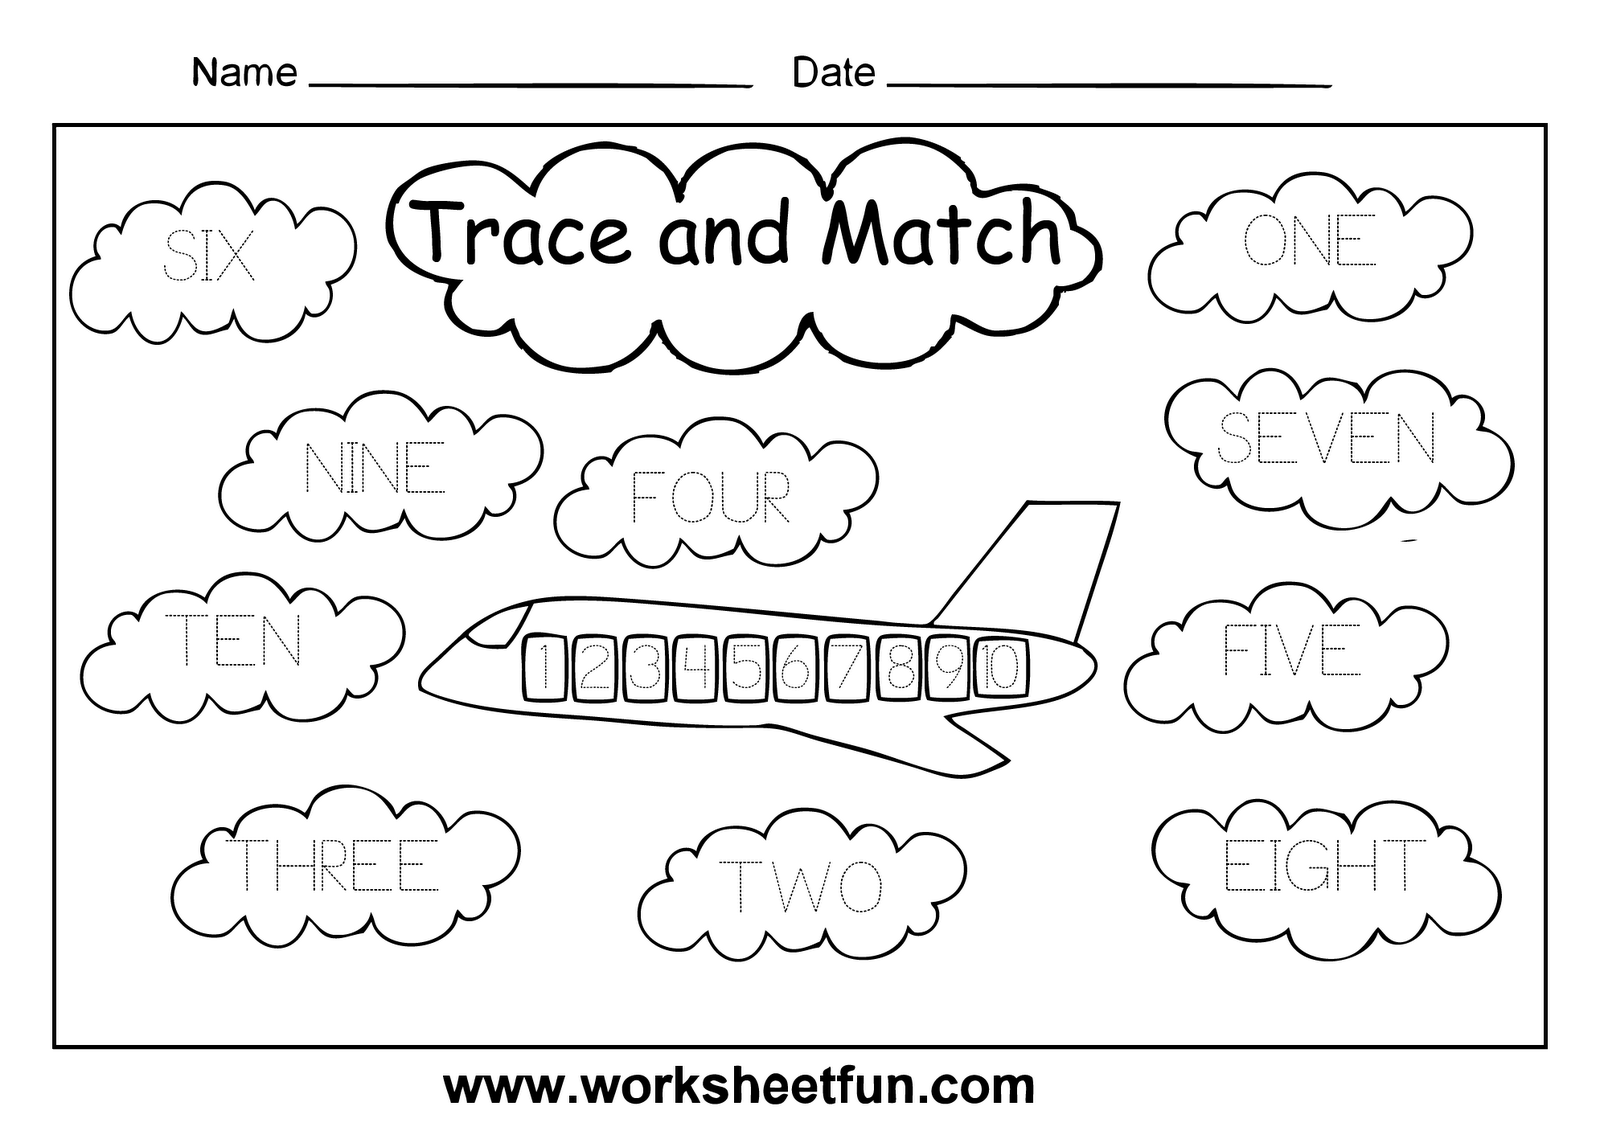 Proatmealus  Picturesque Worksheet Numbers    Reocurent With Likable Continuous Tense Worksheet Besides Phonic Blends Worksheets Furthermore Metric English Conversion Worksheet With Comely Half Worksheets Also Science Push And Pull Worksheets In Addition Reading Activities Worksheets And Beginner Piano Theory Worksheets As Well As Nd Grade Math Worksheets Online Additionally Marriage Help Worksheets From Reocurentcom With Proatmealus  Likable Worksheet Numbers    Reocurent With Comely Continuous Tense Worksheet Besides Phonic Blends Worksheets Furthermore Metric English Conversion Worksheet And Picturesque Half Worksheets Also Science Push And Pull Worksheets In Addition Reading Activities Worksheets From Reocurentcom